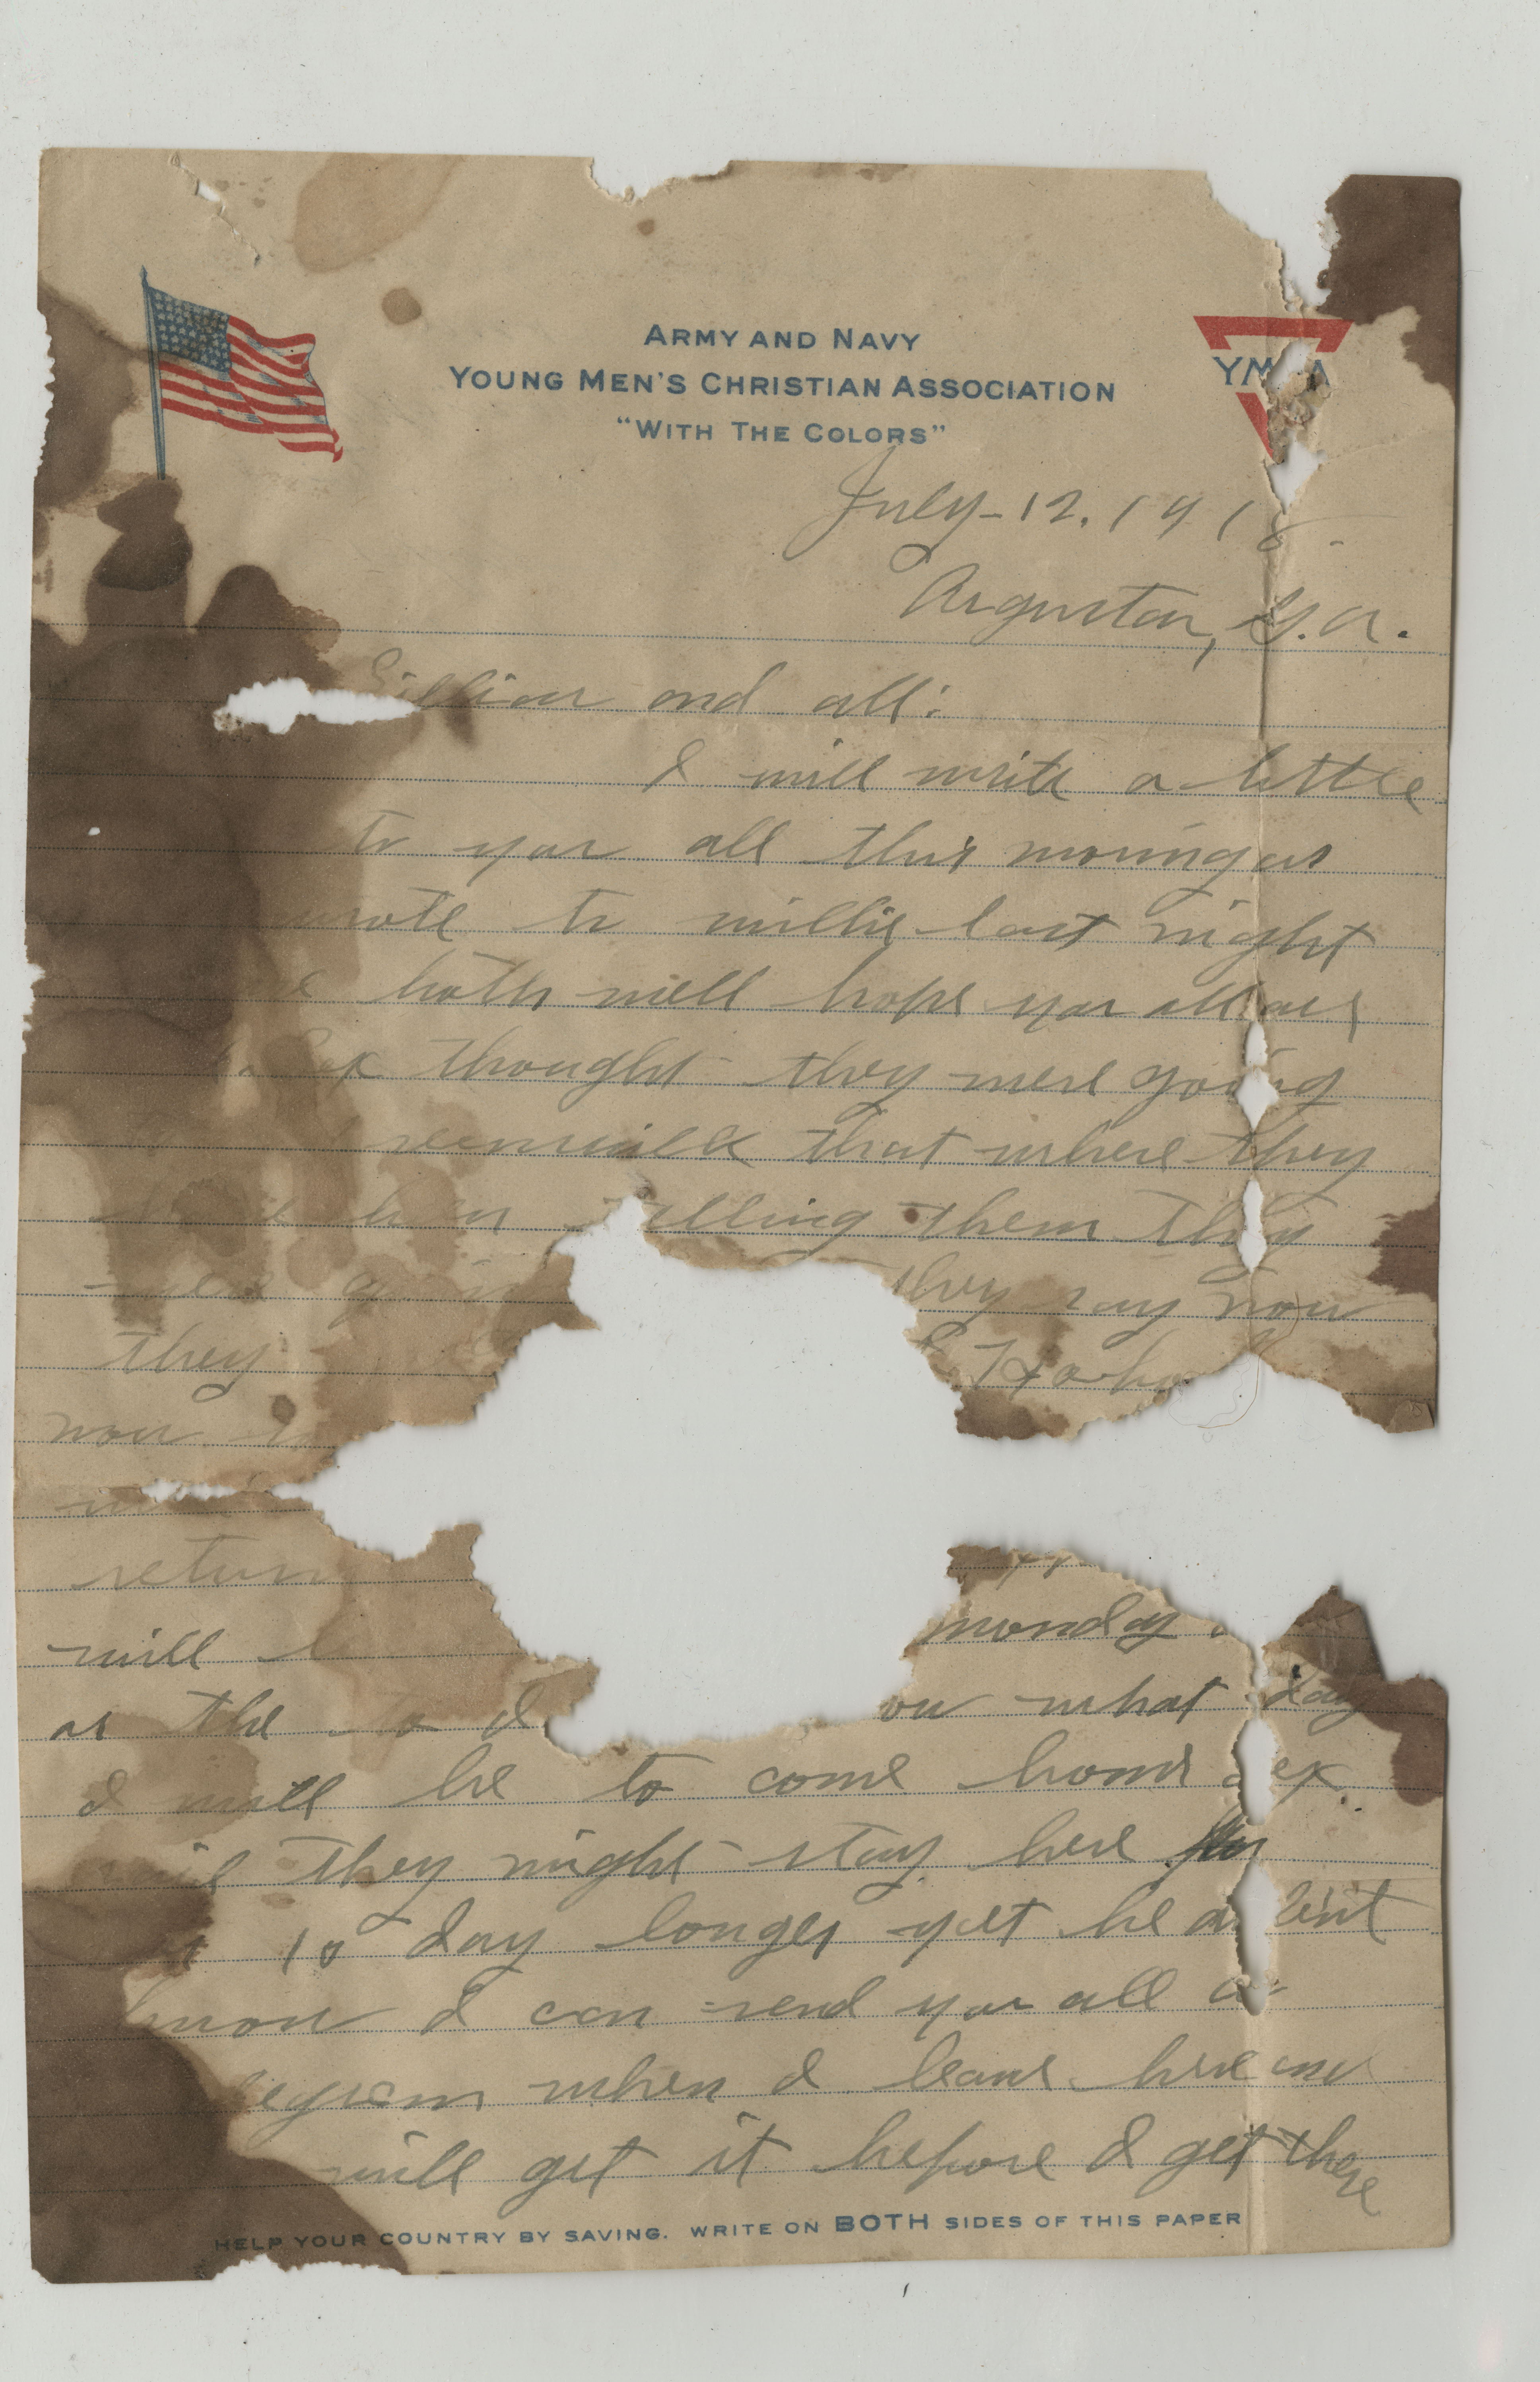 Ms2017-004_TurnerFamilyPapers_Letter_1918_0712a